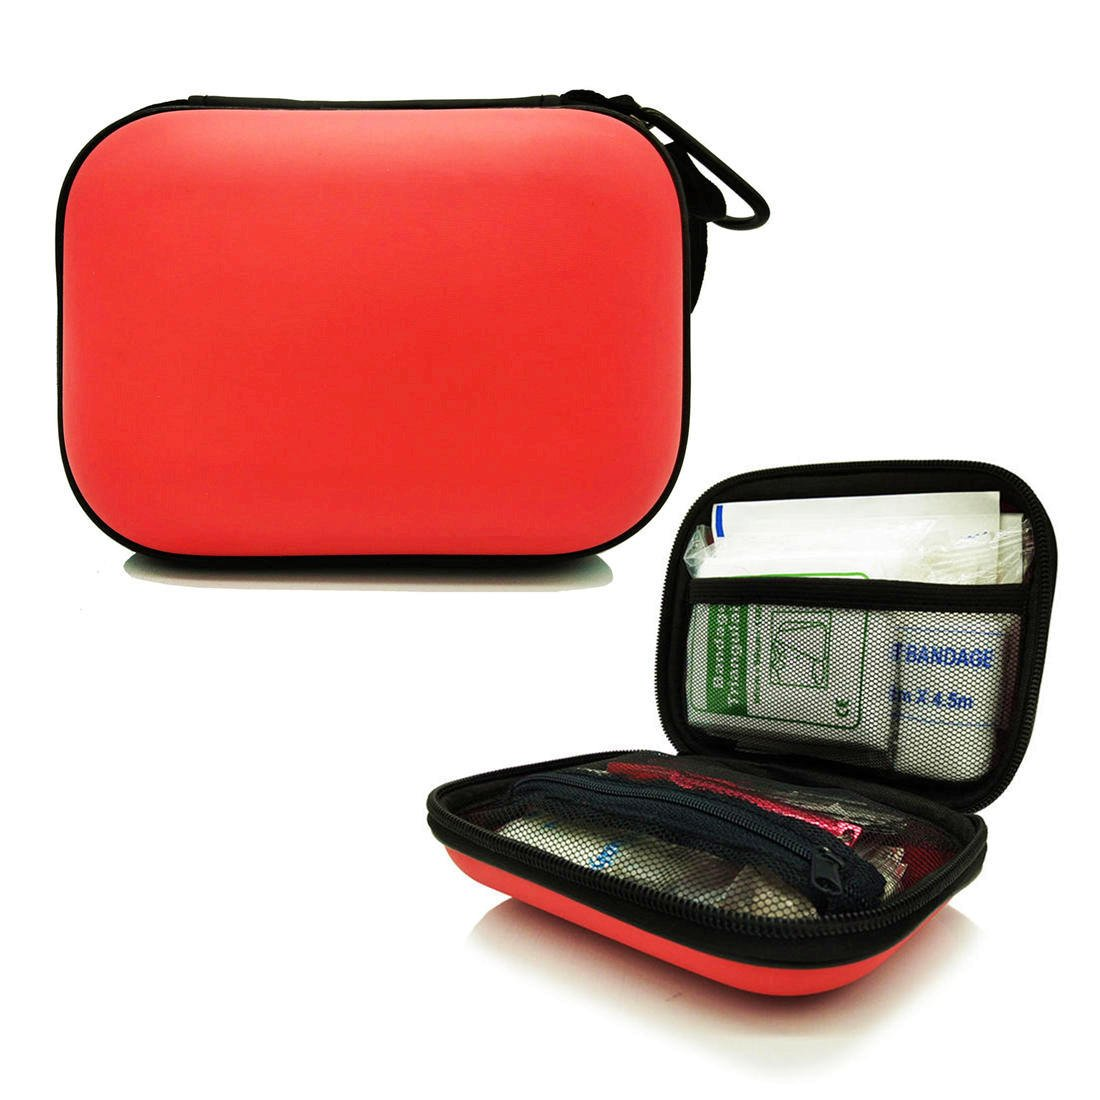 First Aid Kit - Small Waterproof Compact Case, 23 Kinds of Basics for Emergency Survival Safety, for Boat, Cars, House, Office, Camping, Hiking, Travel, Sports, and More Indoors & Outdoors Use, Red